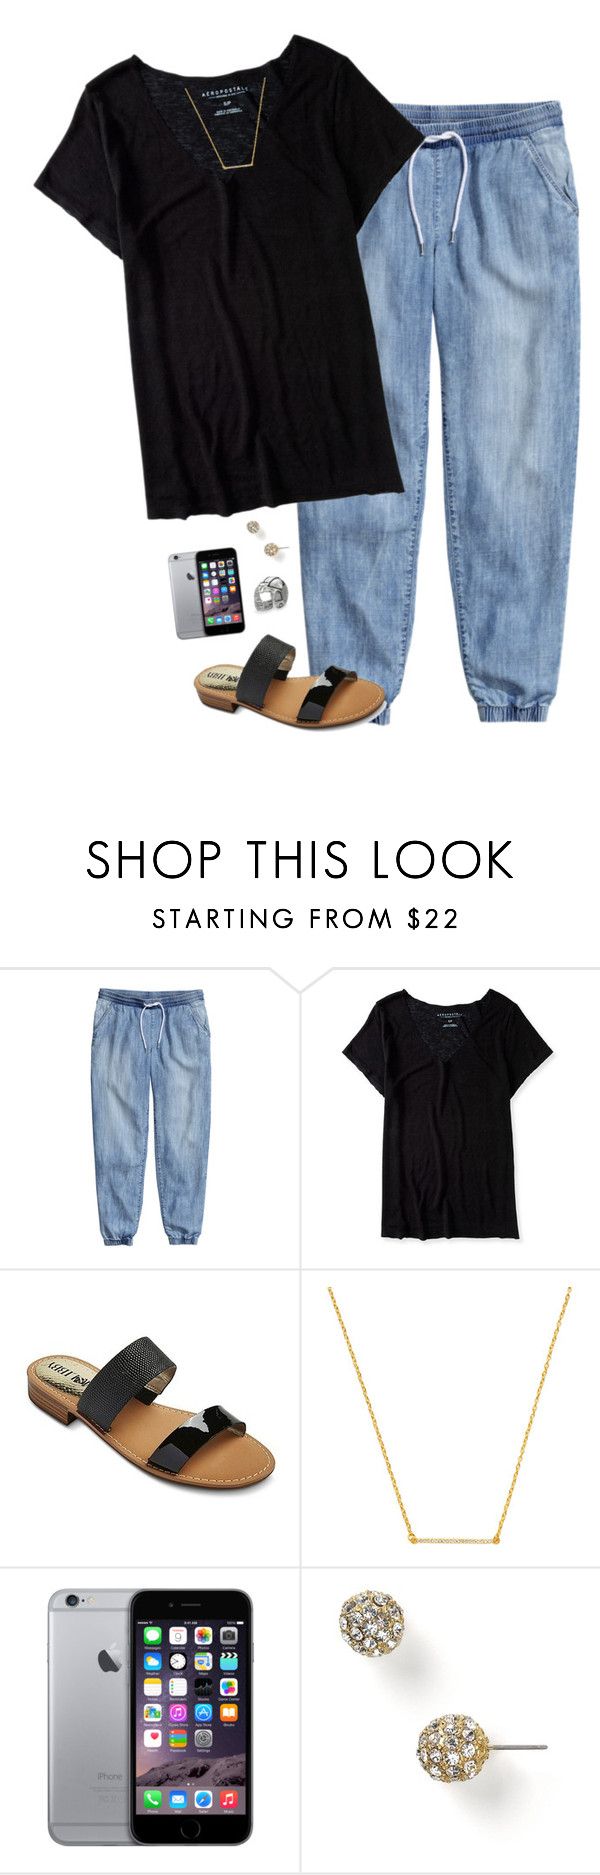 """""""Very similar oorn! Friday night football!!"""" by i-am-bryana ❤ liked on Polyvore featuring H&M, Aéropostale, Sam & Libby, Kevia, Carolee and Individuality Beads"""